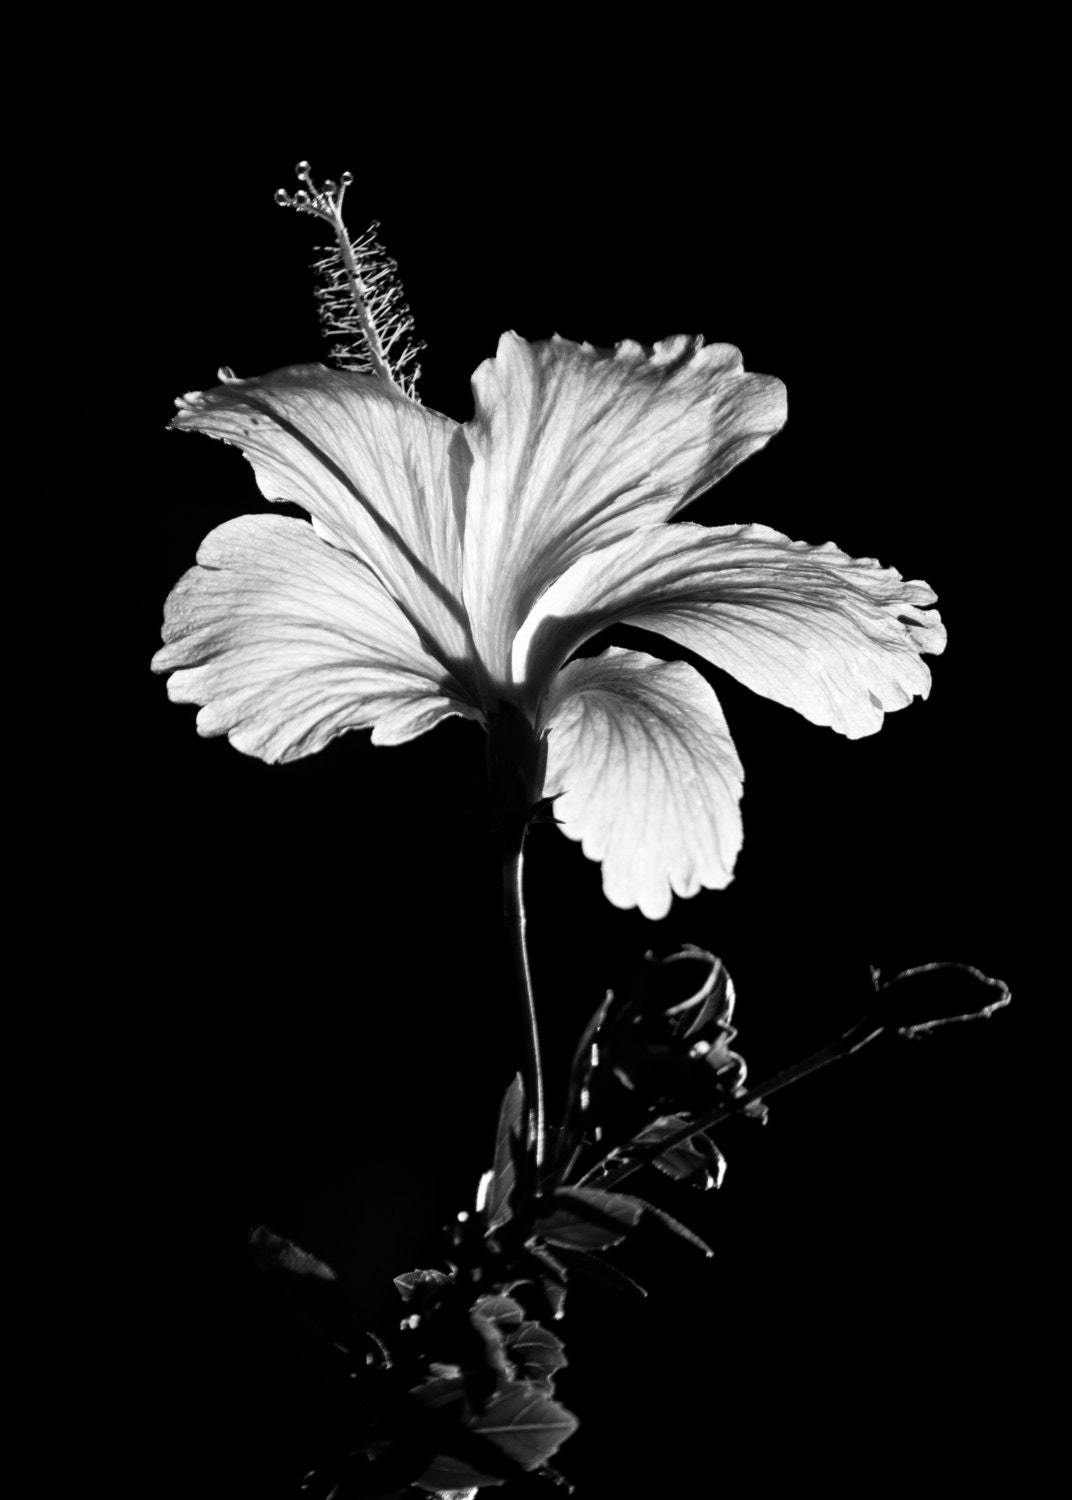 Black and white hibiscus flower photography floral nature 8x10 etsy 50 izmirmasajfo